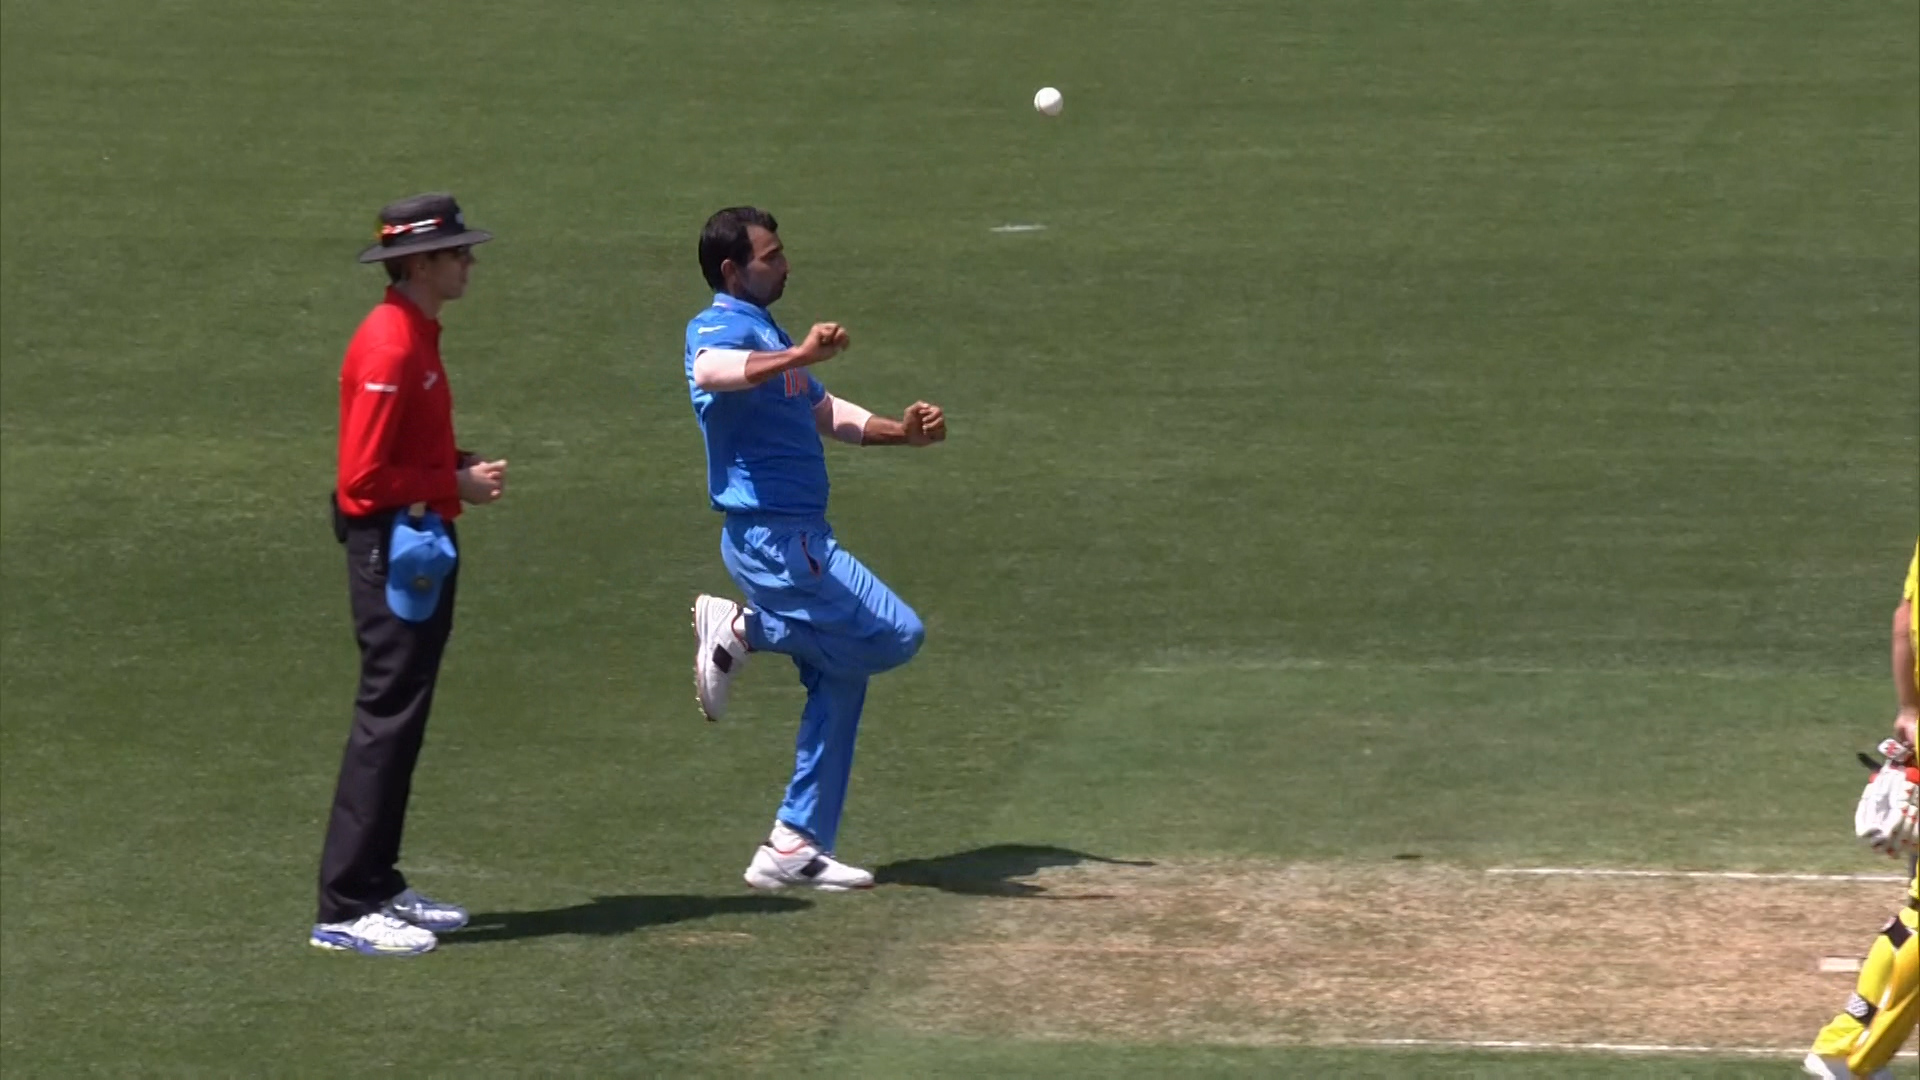 AUS vs IND – Mohammad Shami Dead Ball to Shane Watson!